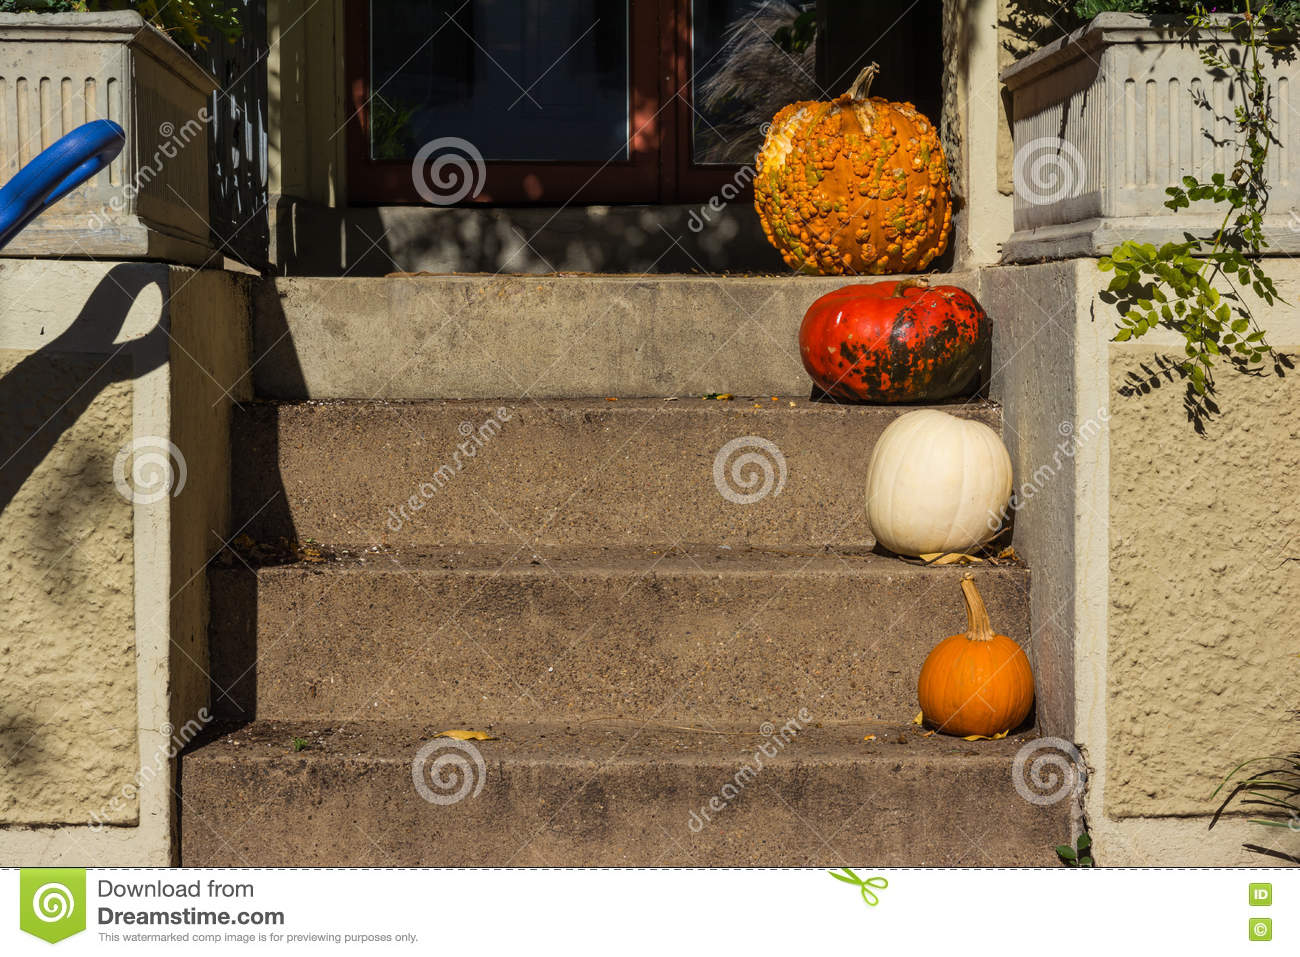 Tamanho diferente Dia das Bruxas Autumn Pumpkins Decoration Porch Steps